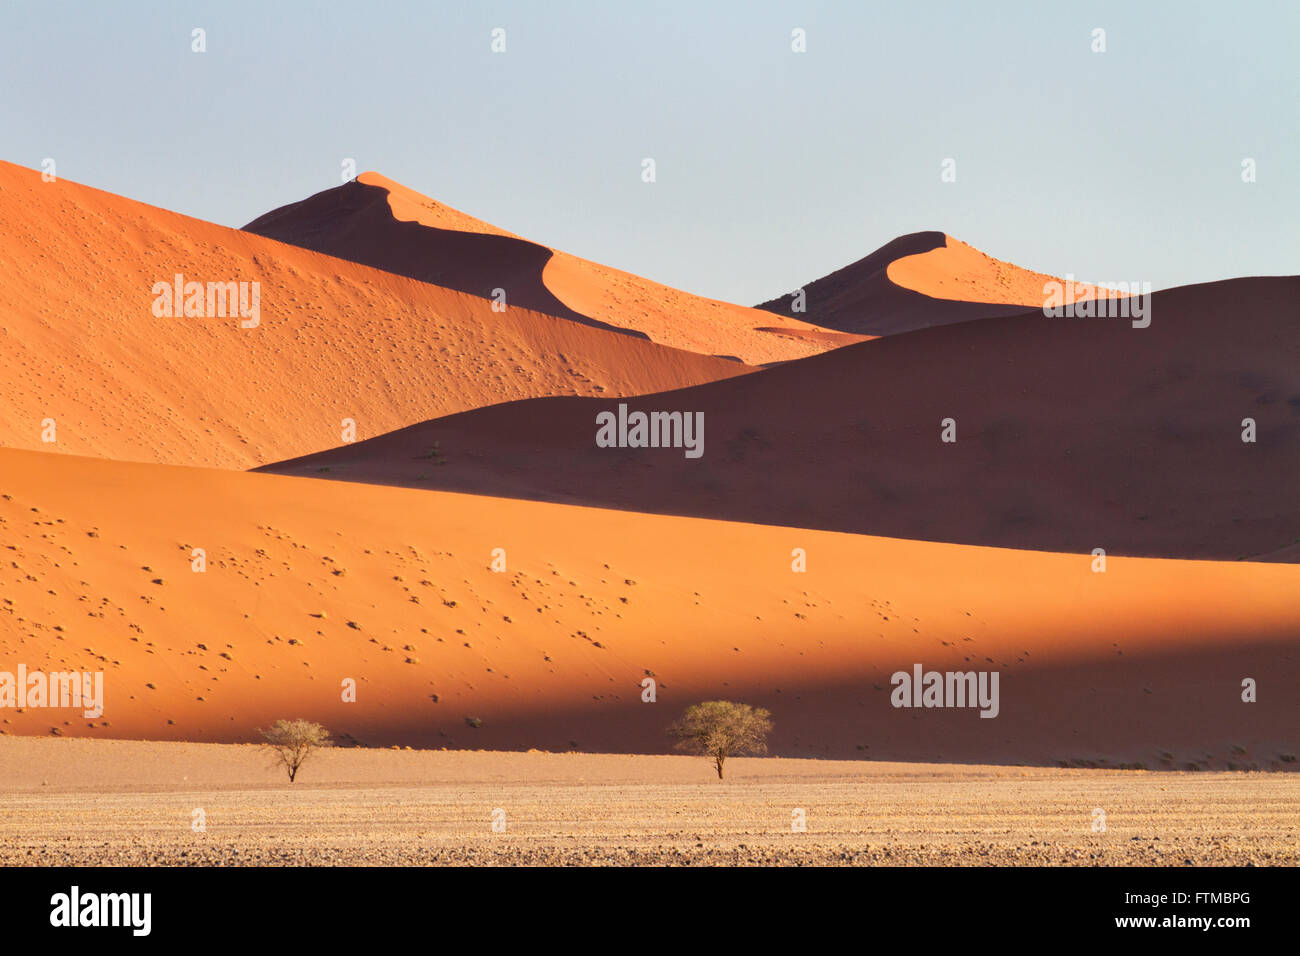 Mountainous sand-dunes and camelthorn acacia trees in the Namib desert in the Namib-Naukluft National Park of Namibia - Stock Image